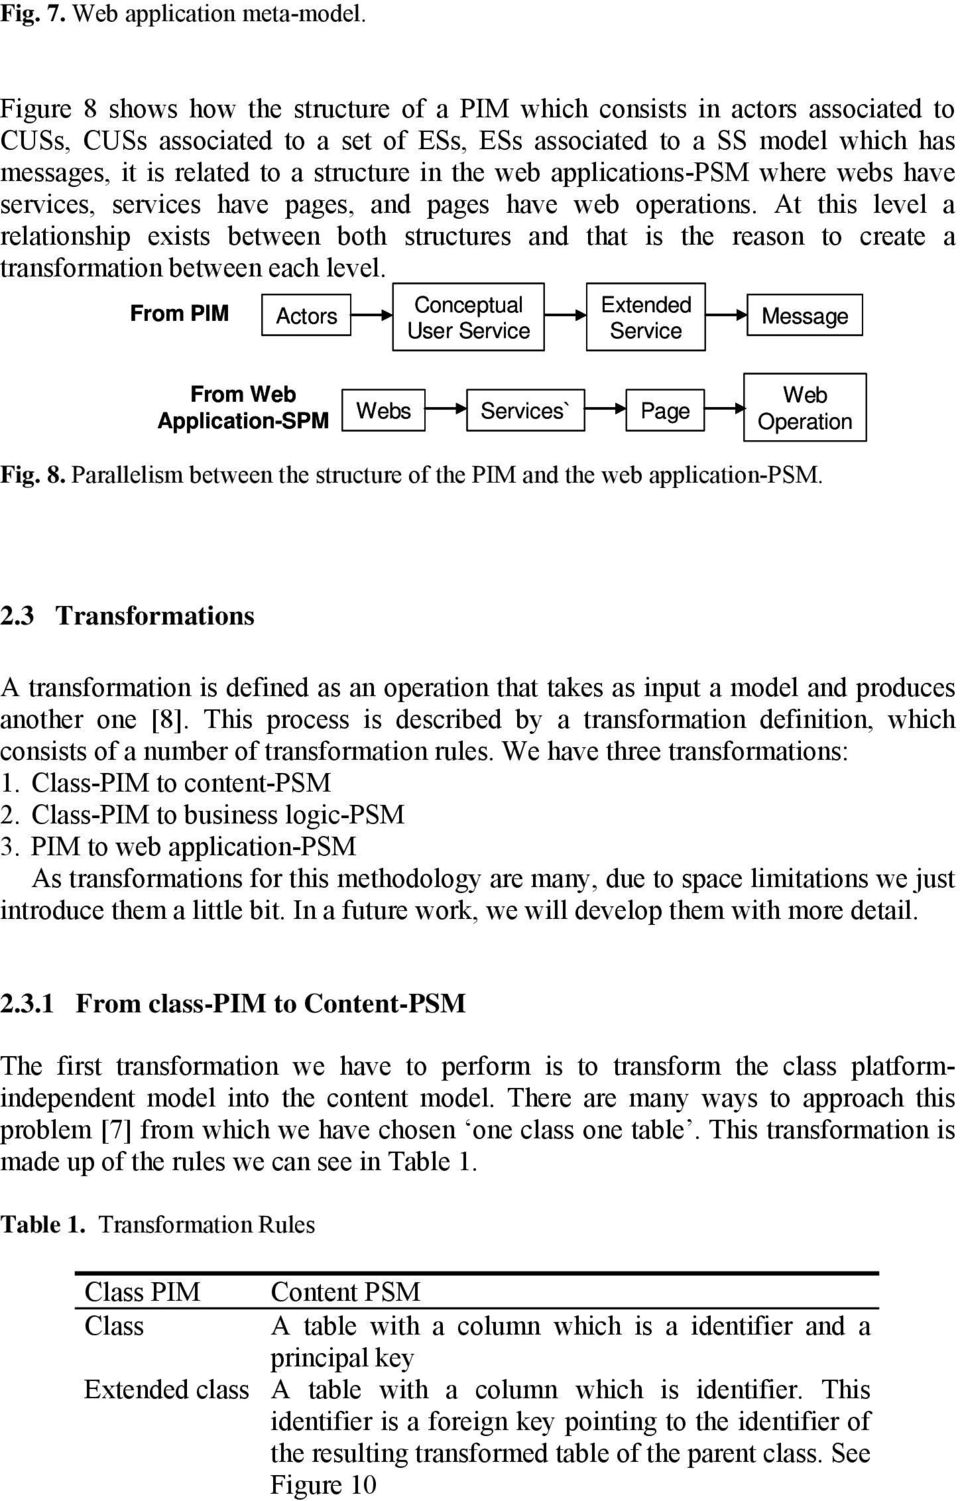 in the web applications-psm where webs have services, services have pages, and pages have web operations.